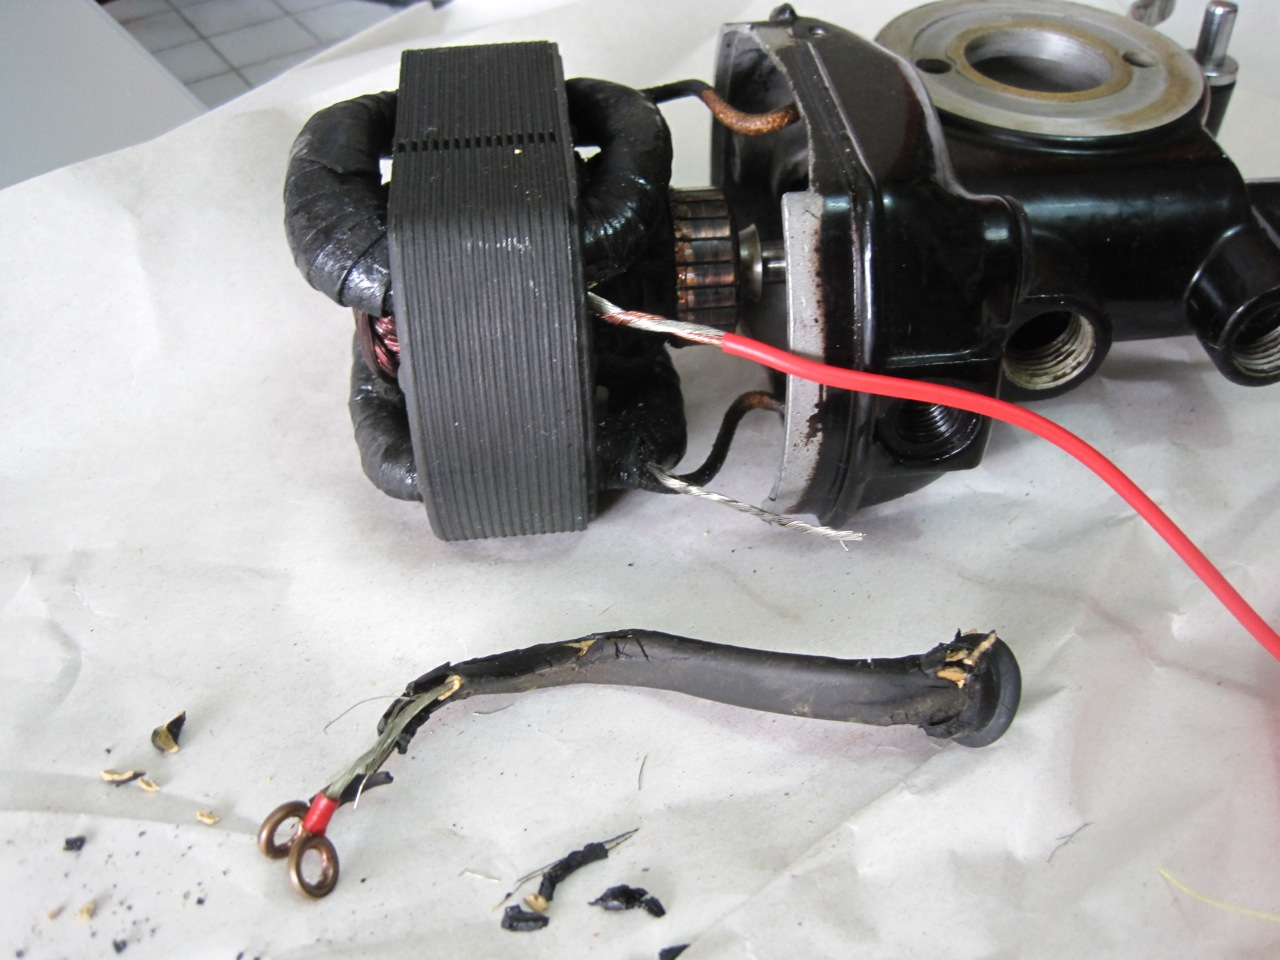 Singer Sewing Motor Controller Wiring Free Sewing Projects